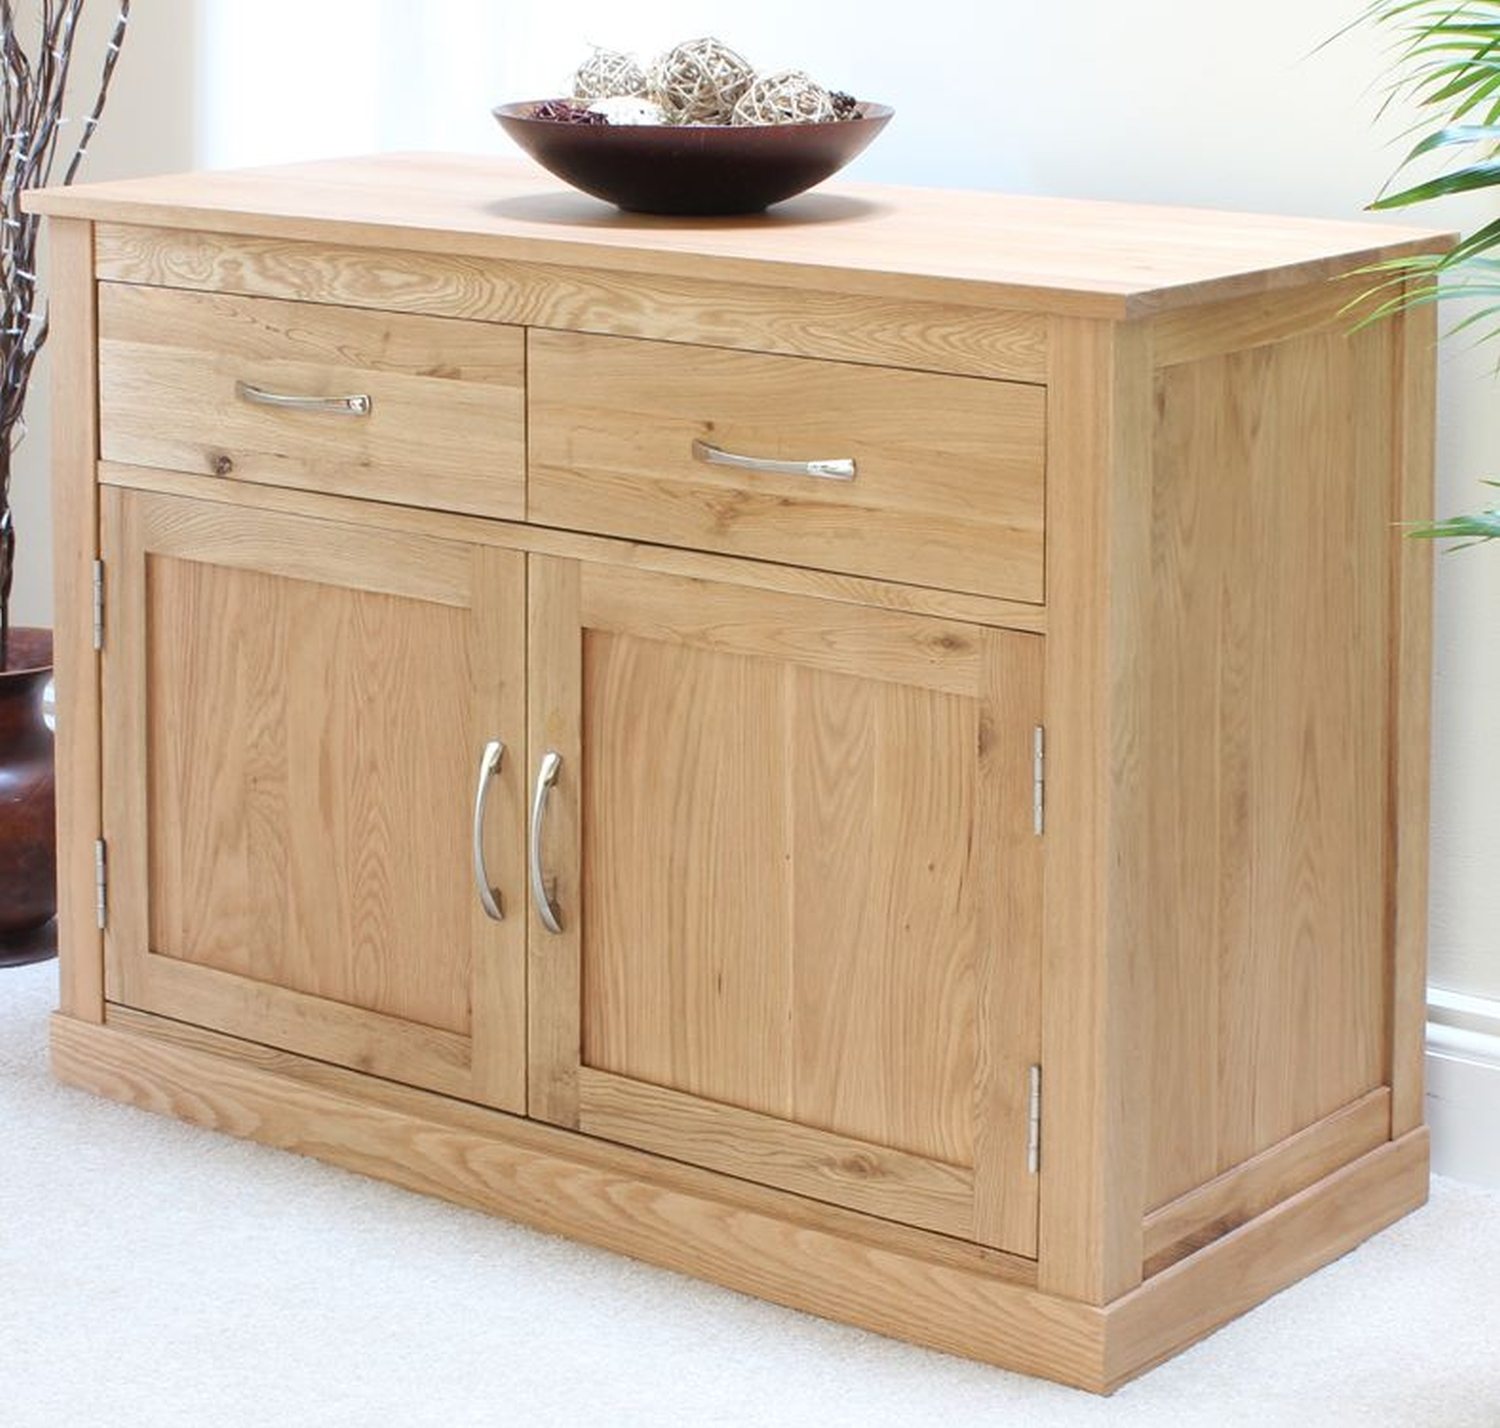 Storage Living Room Furniture: Conran Solid Oak Furniture Sideboard Small Living Dining